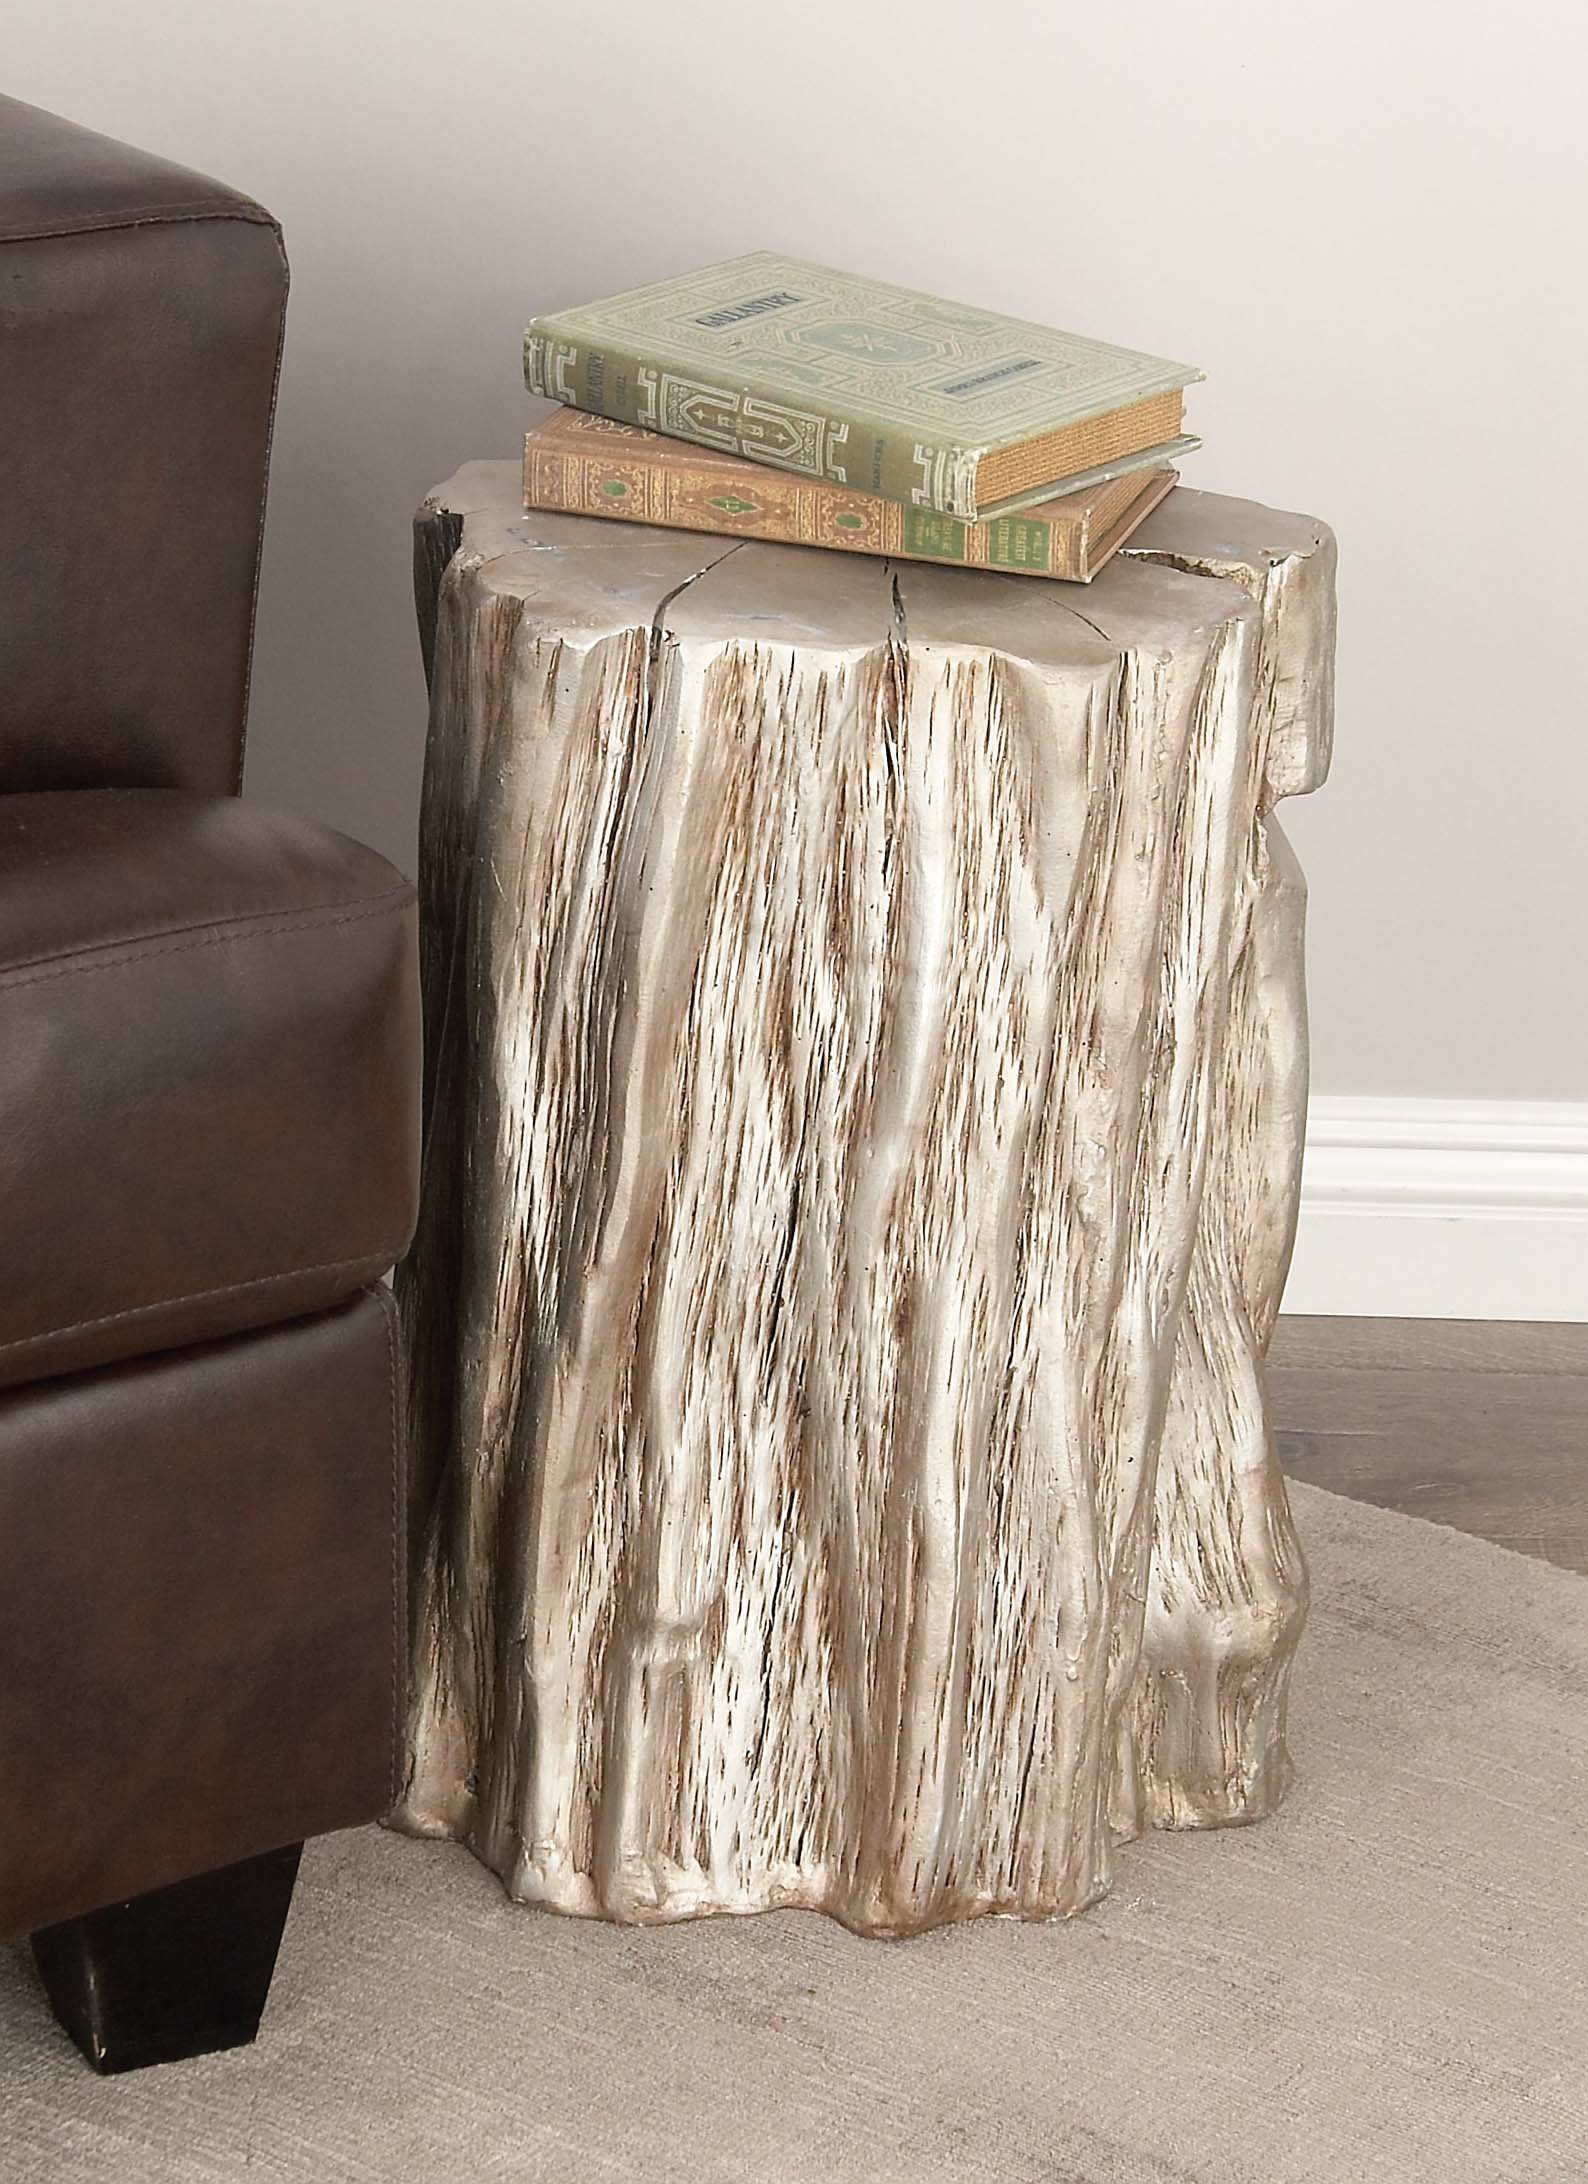 mcm end table probably terrific silver tree stump cole grey fiberglass accent stool reviews target dining room chairs side white and nightstand teak wedding arrangements coffee